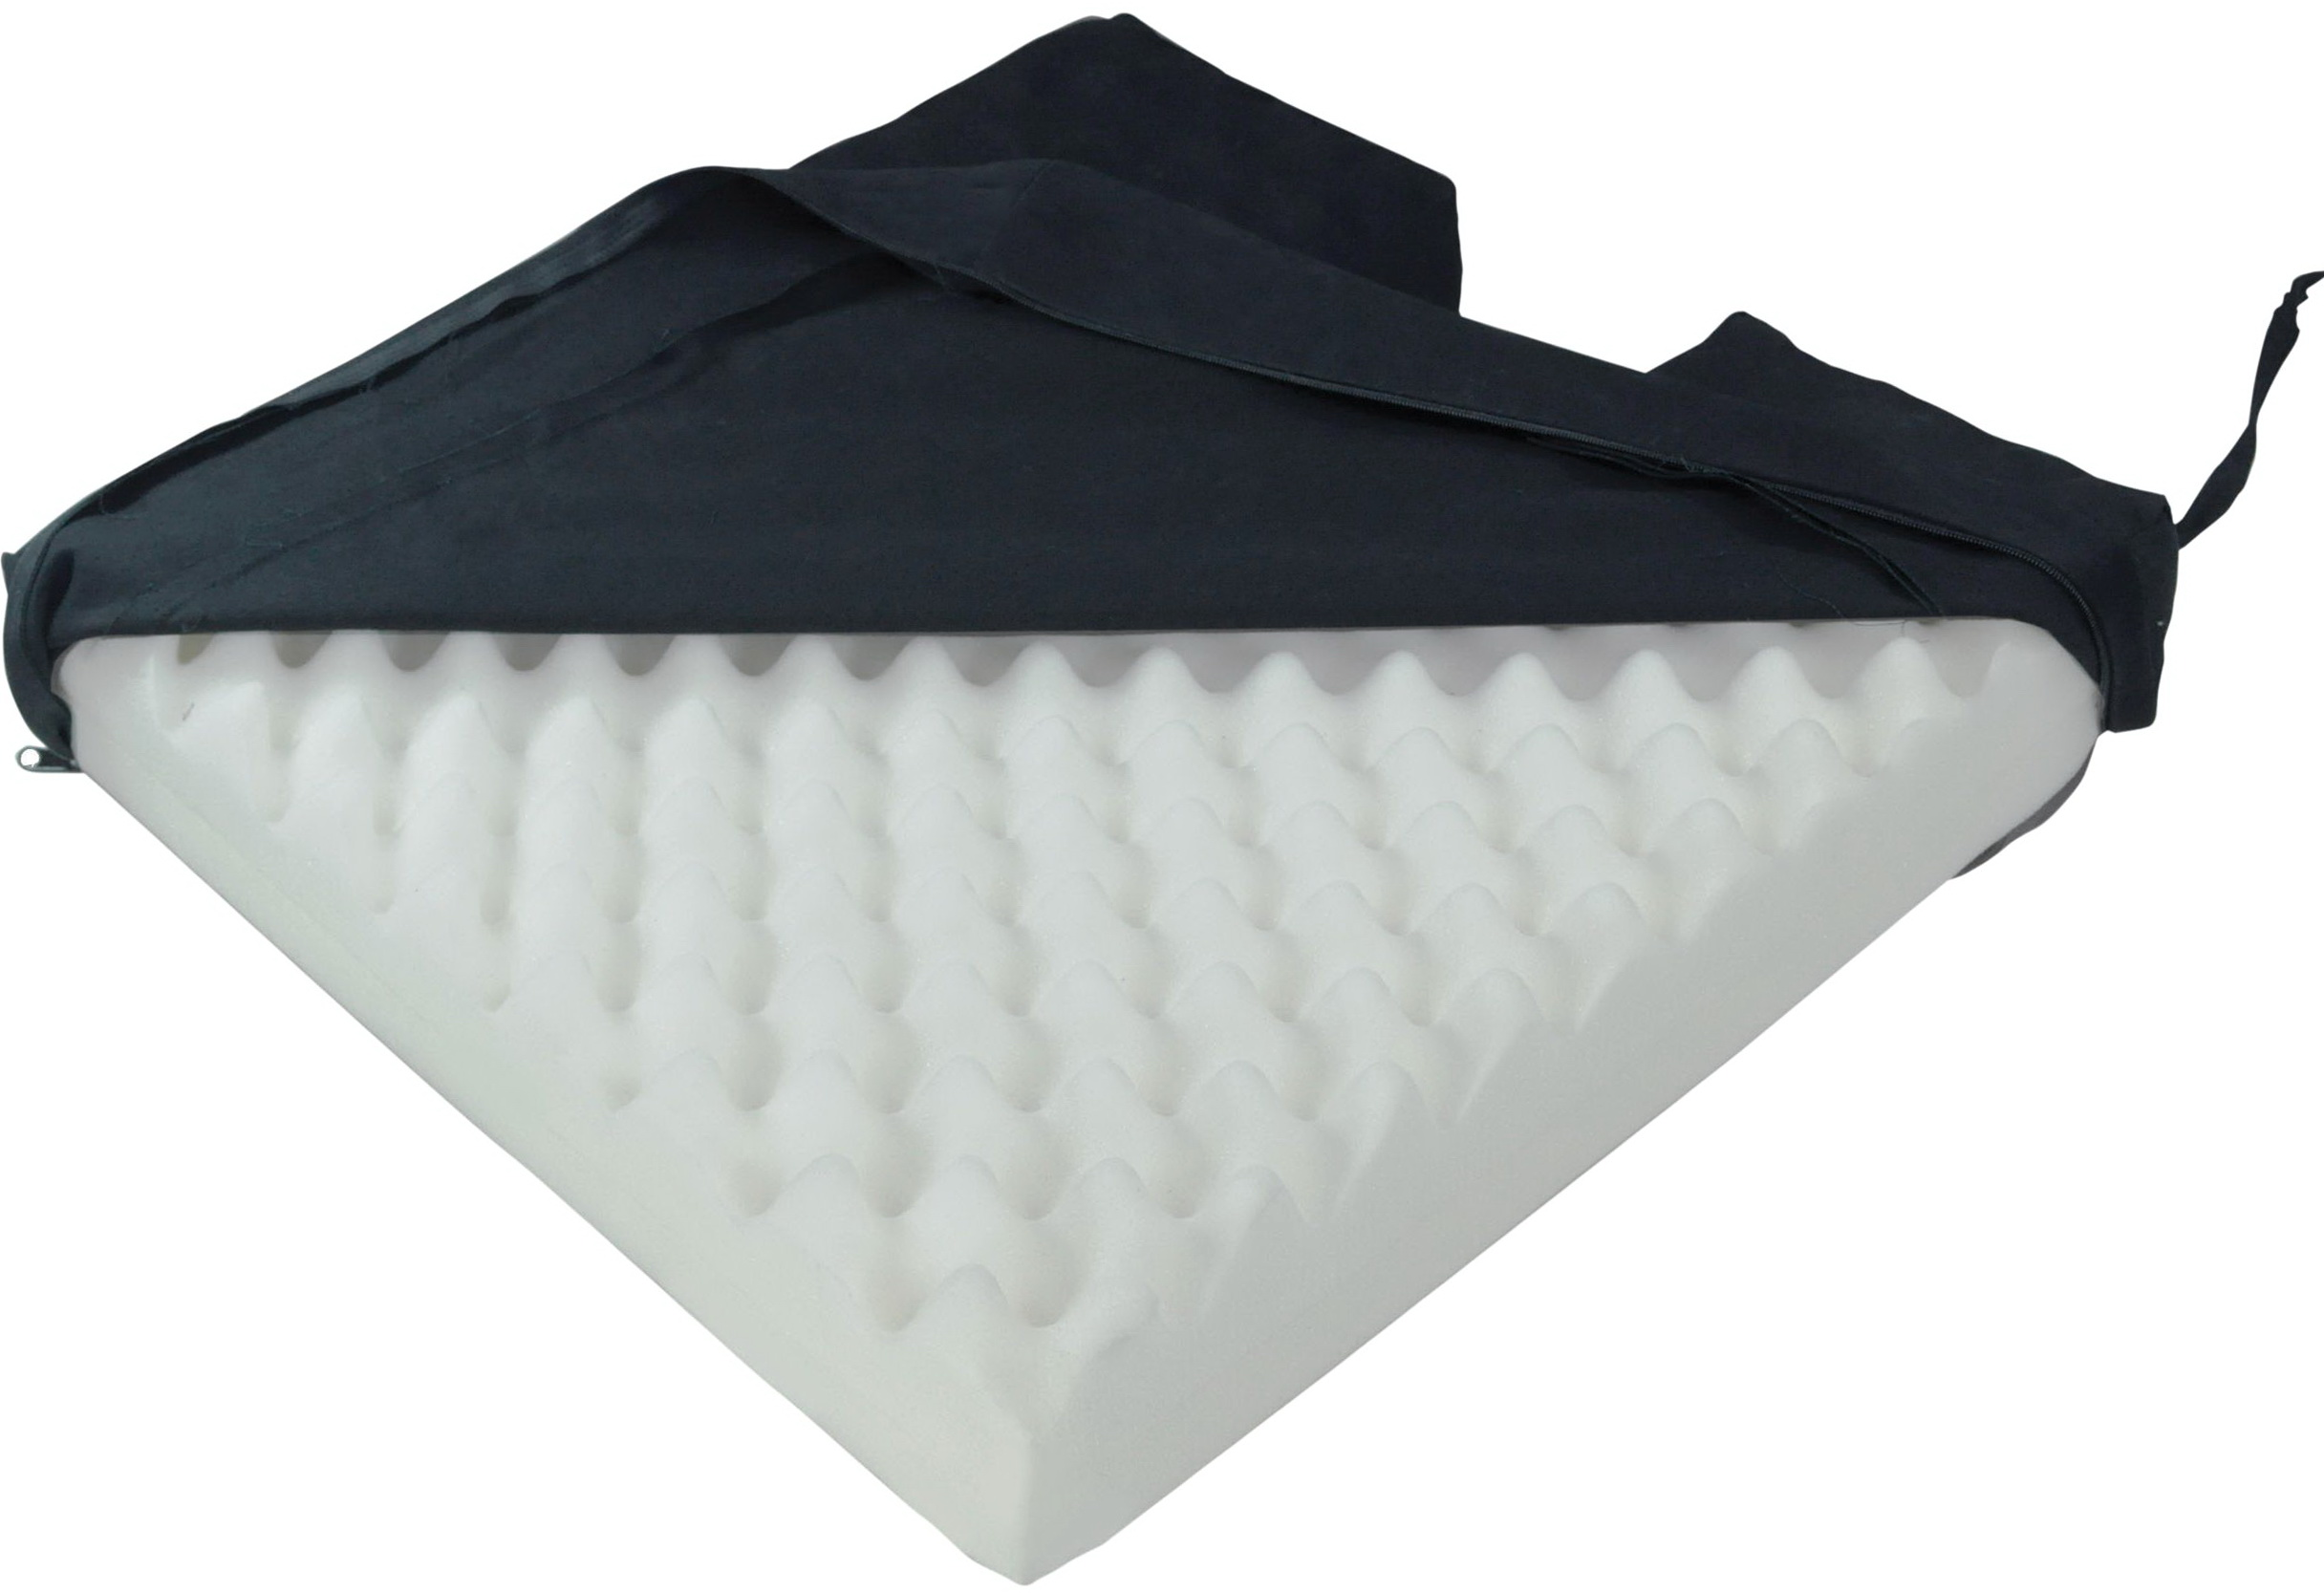 Coccyx Seat Cushion By Cushion Care